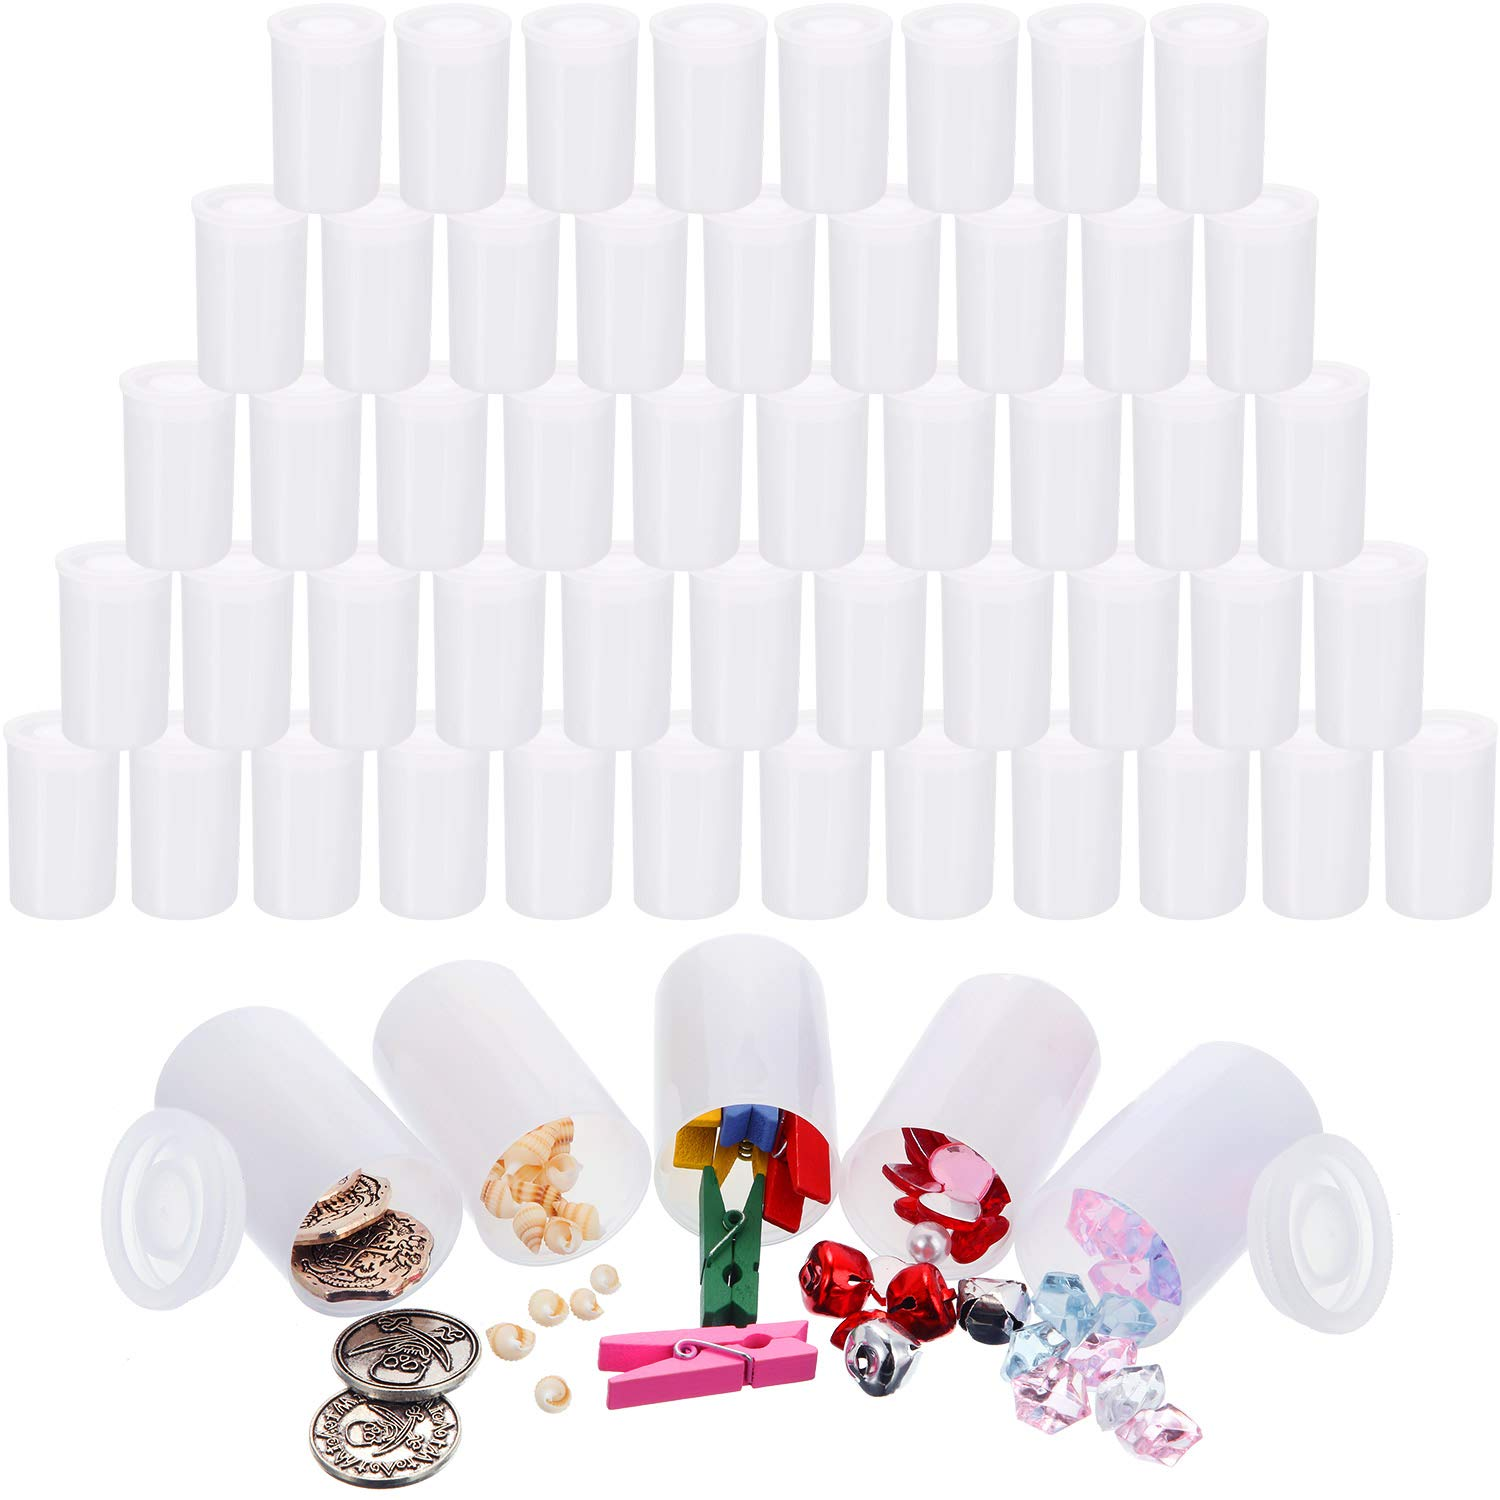 Jovitec 60 Pieces White Film Canisters with Caps, 35 mm Empty Camera Reel Storage Containers Case with Lids, Films Developing Processing Tube for Storing Films, Small Accessories by Jovitec